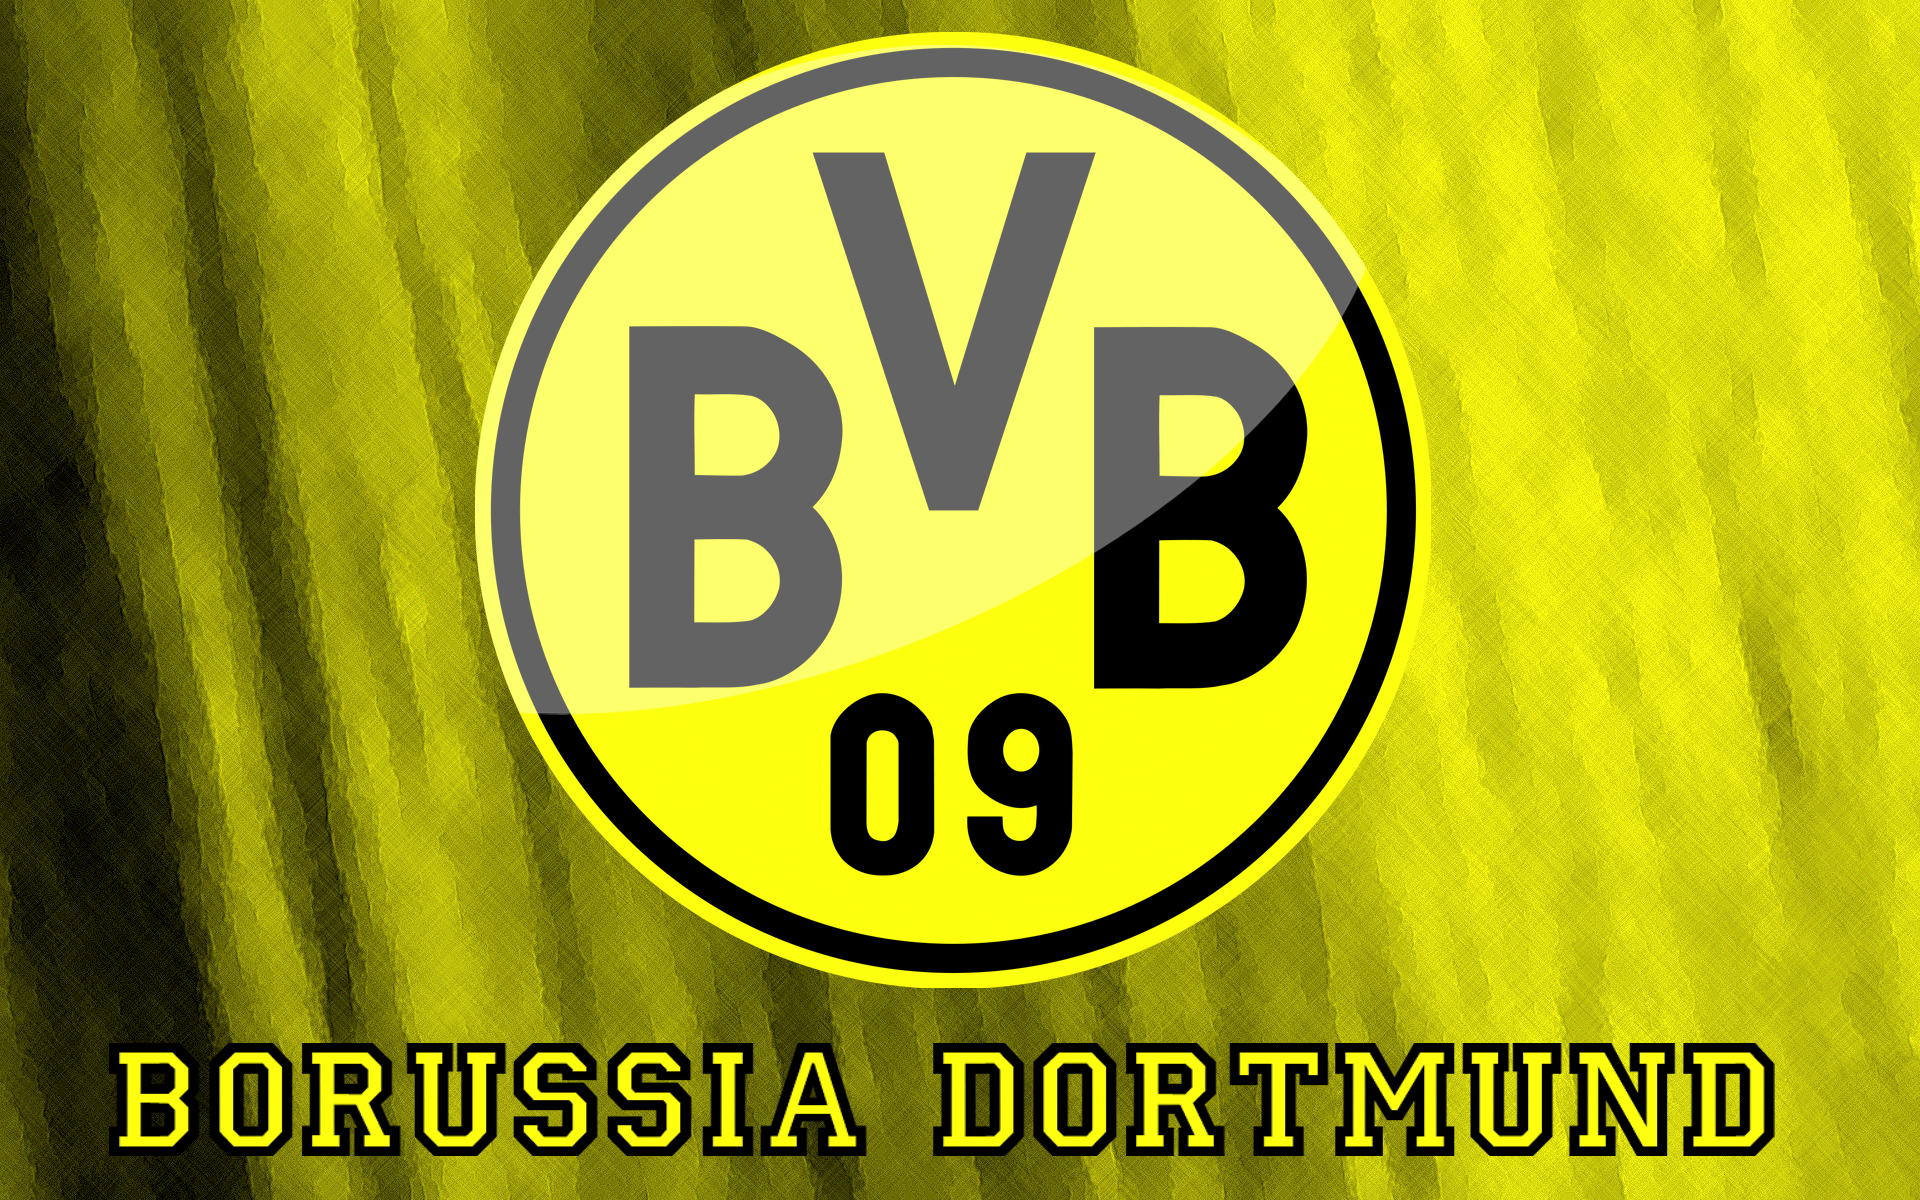 Borussia Dortmund Wallpaper High Resolution